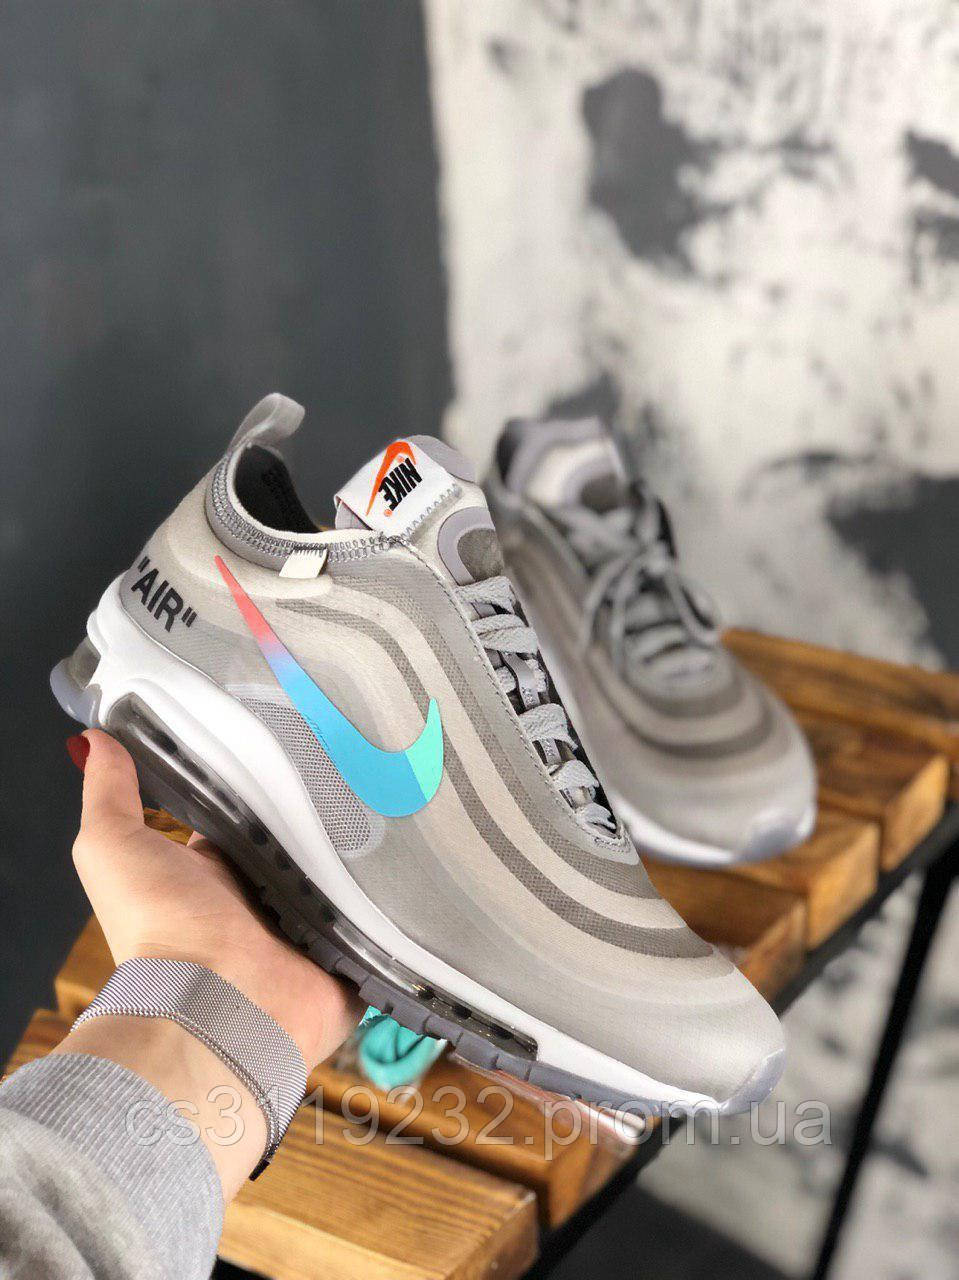 Мужские кроссовки Nike Off-White x Nike Air Max 97 Menta